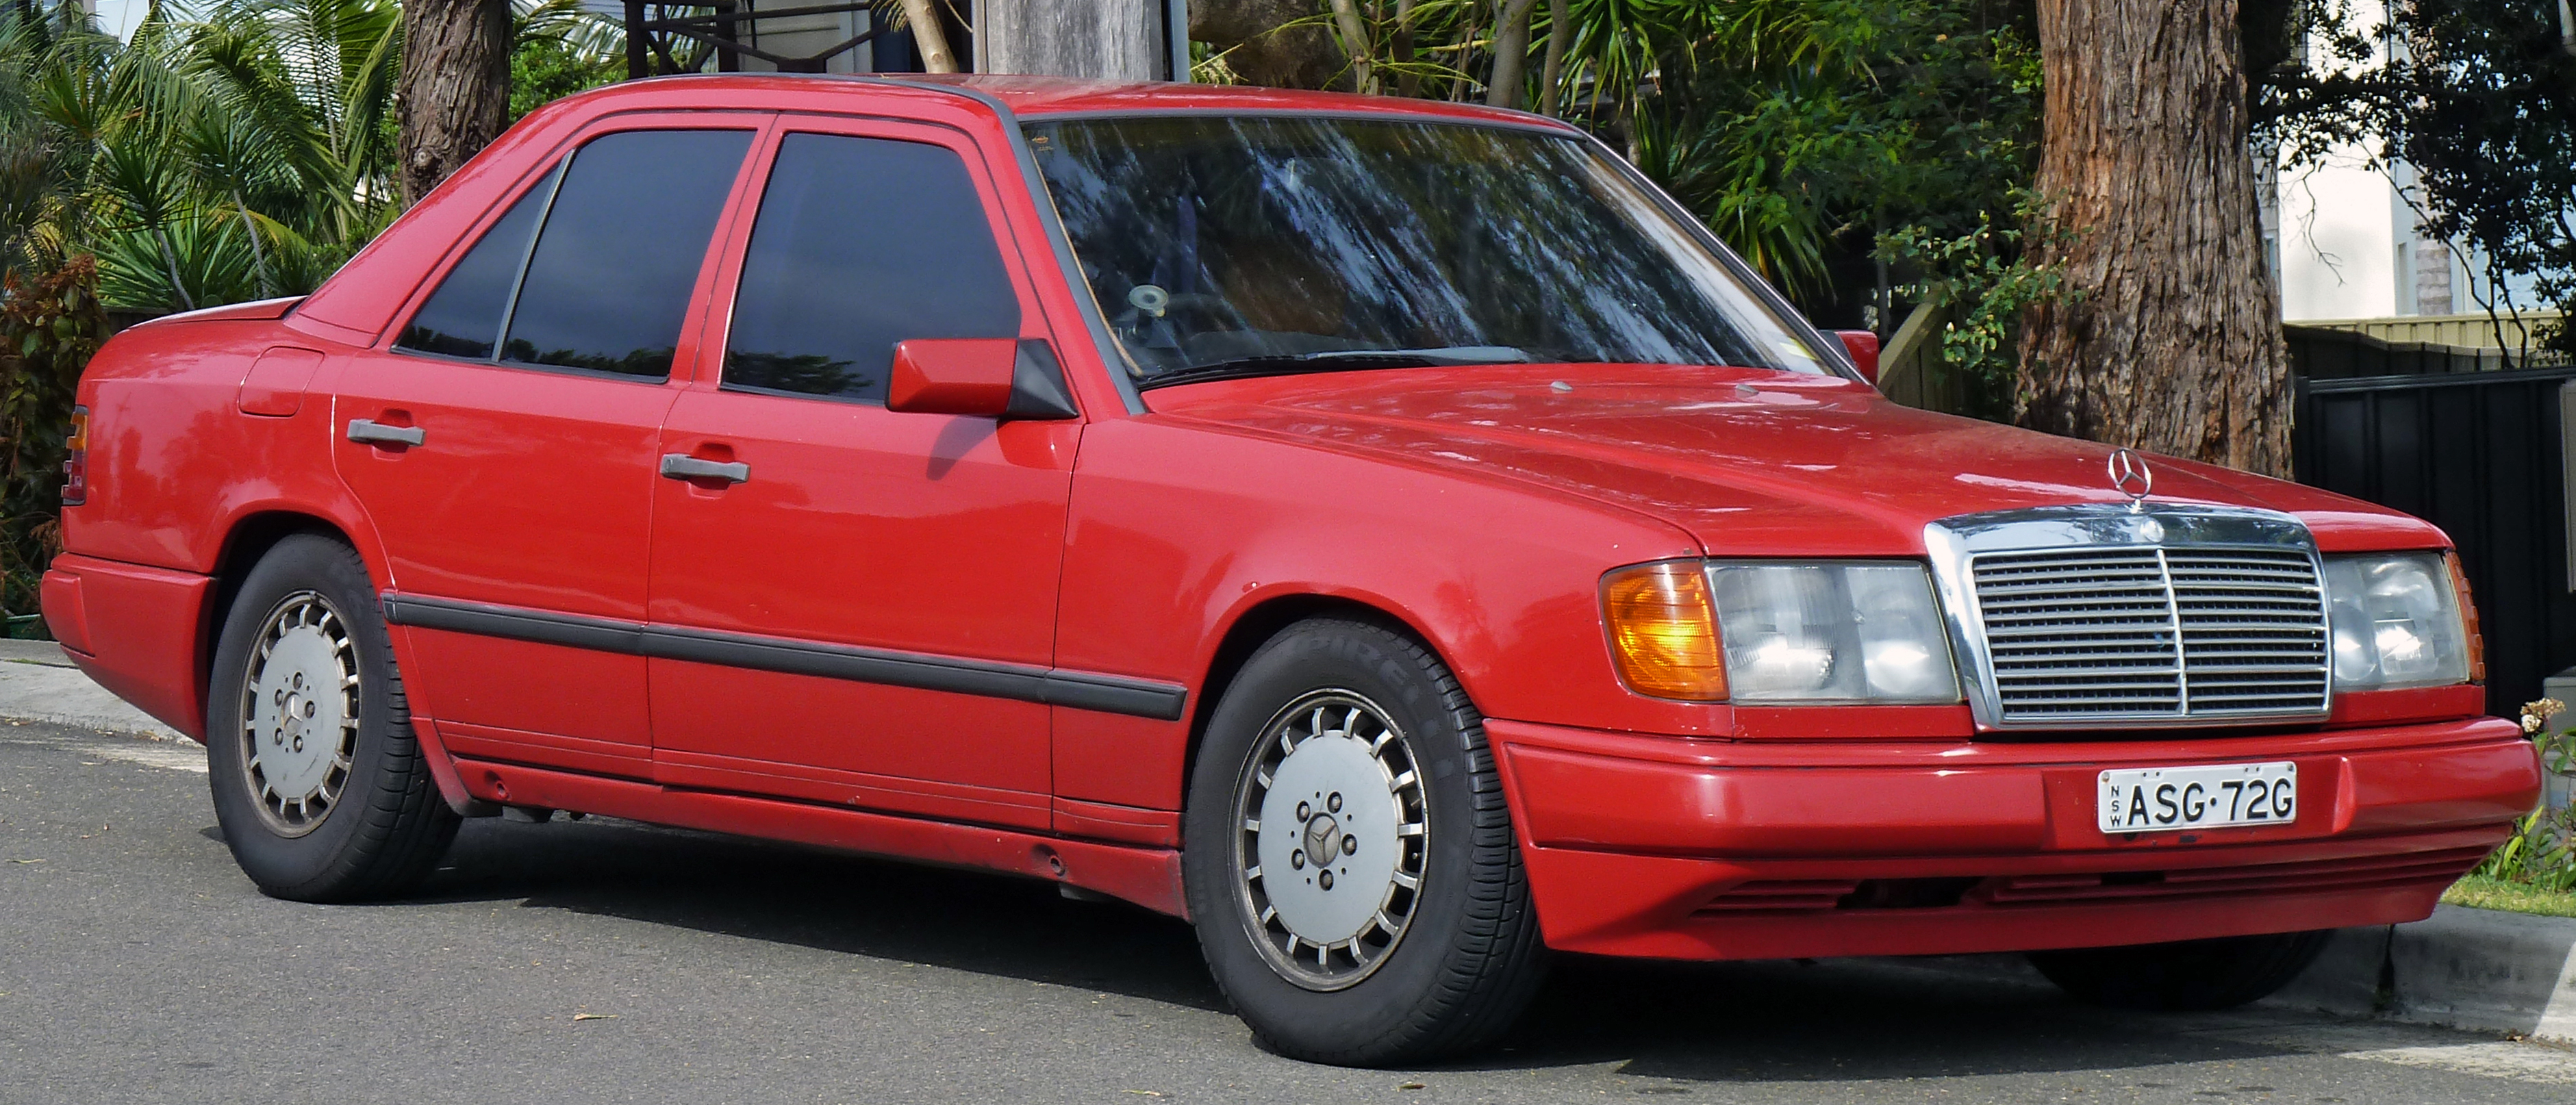 How Can I Slightly Lower My 190e Page 2 Mercedes